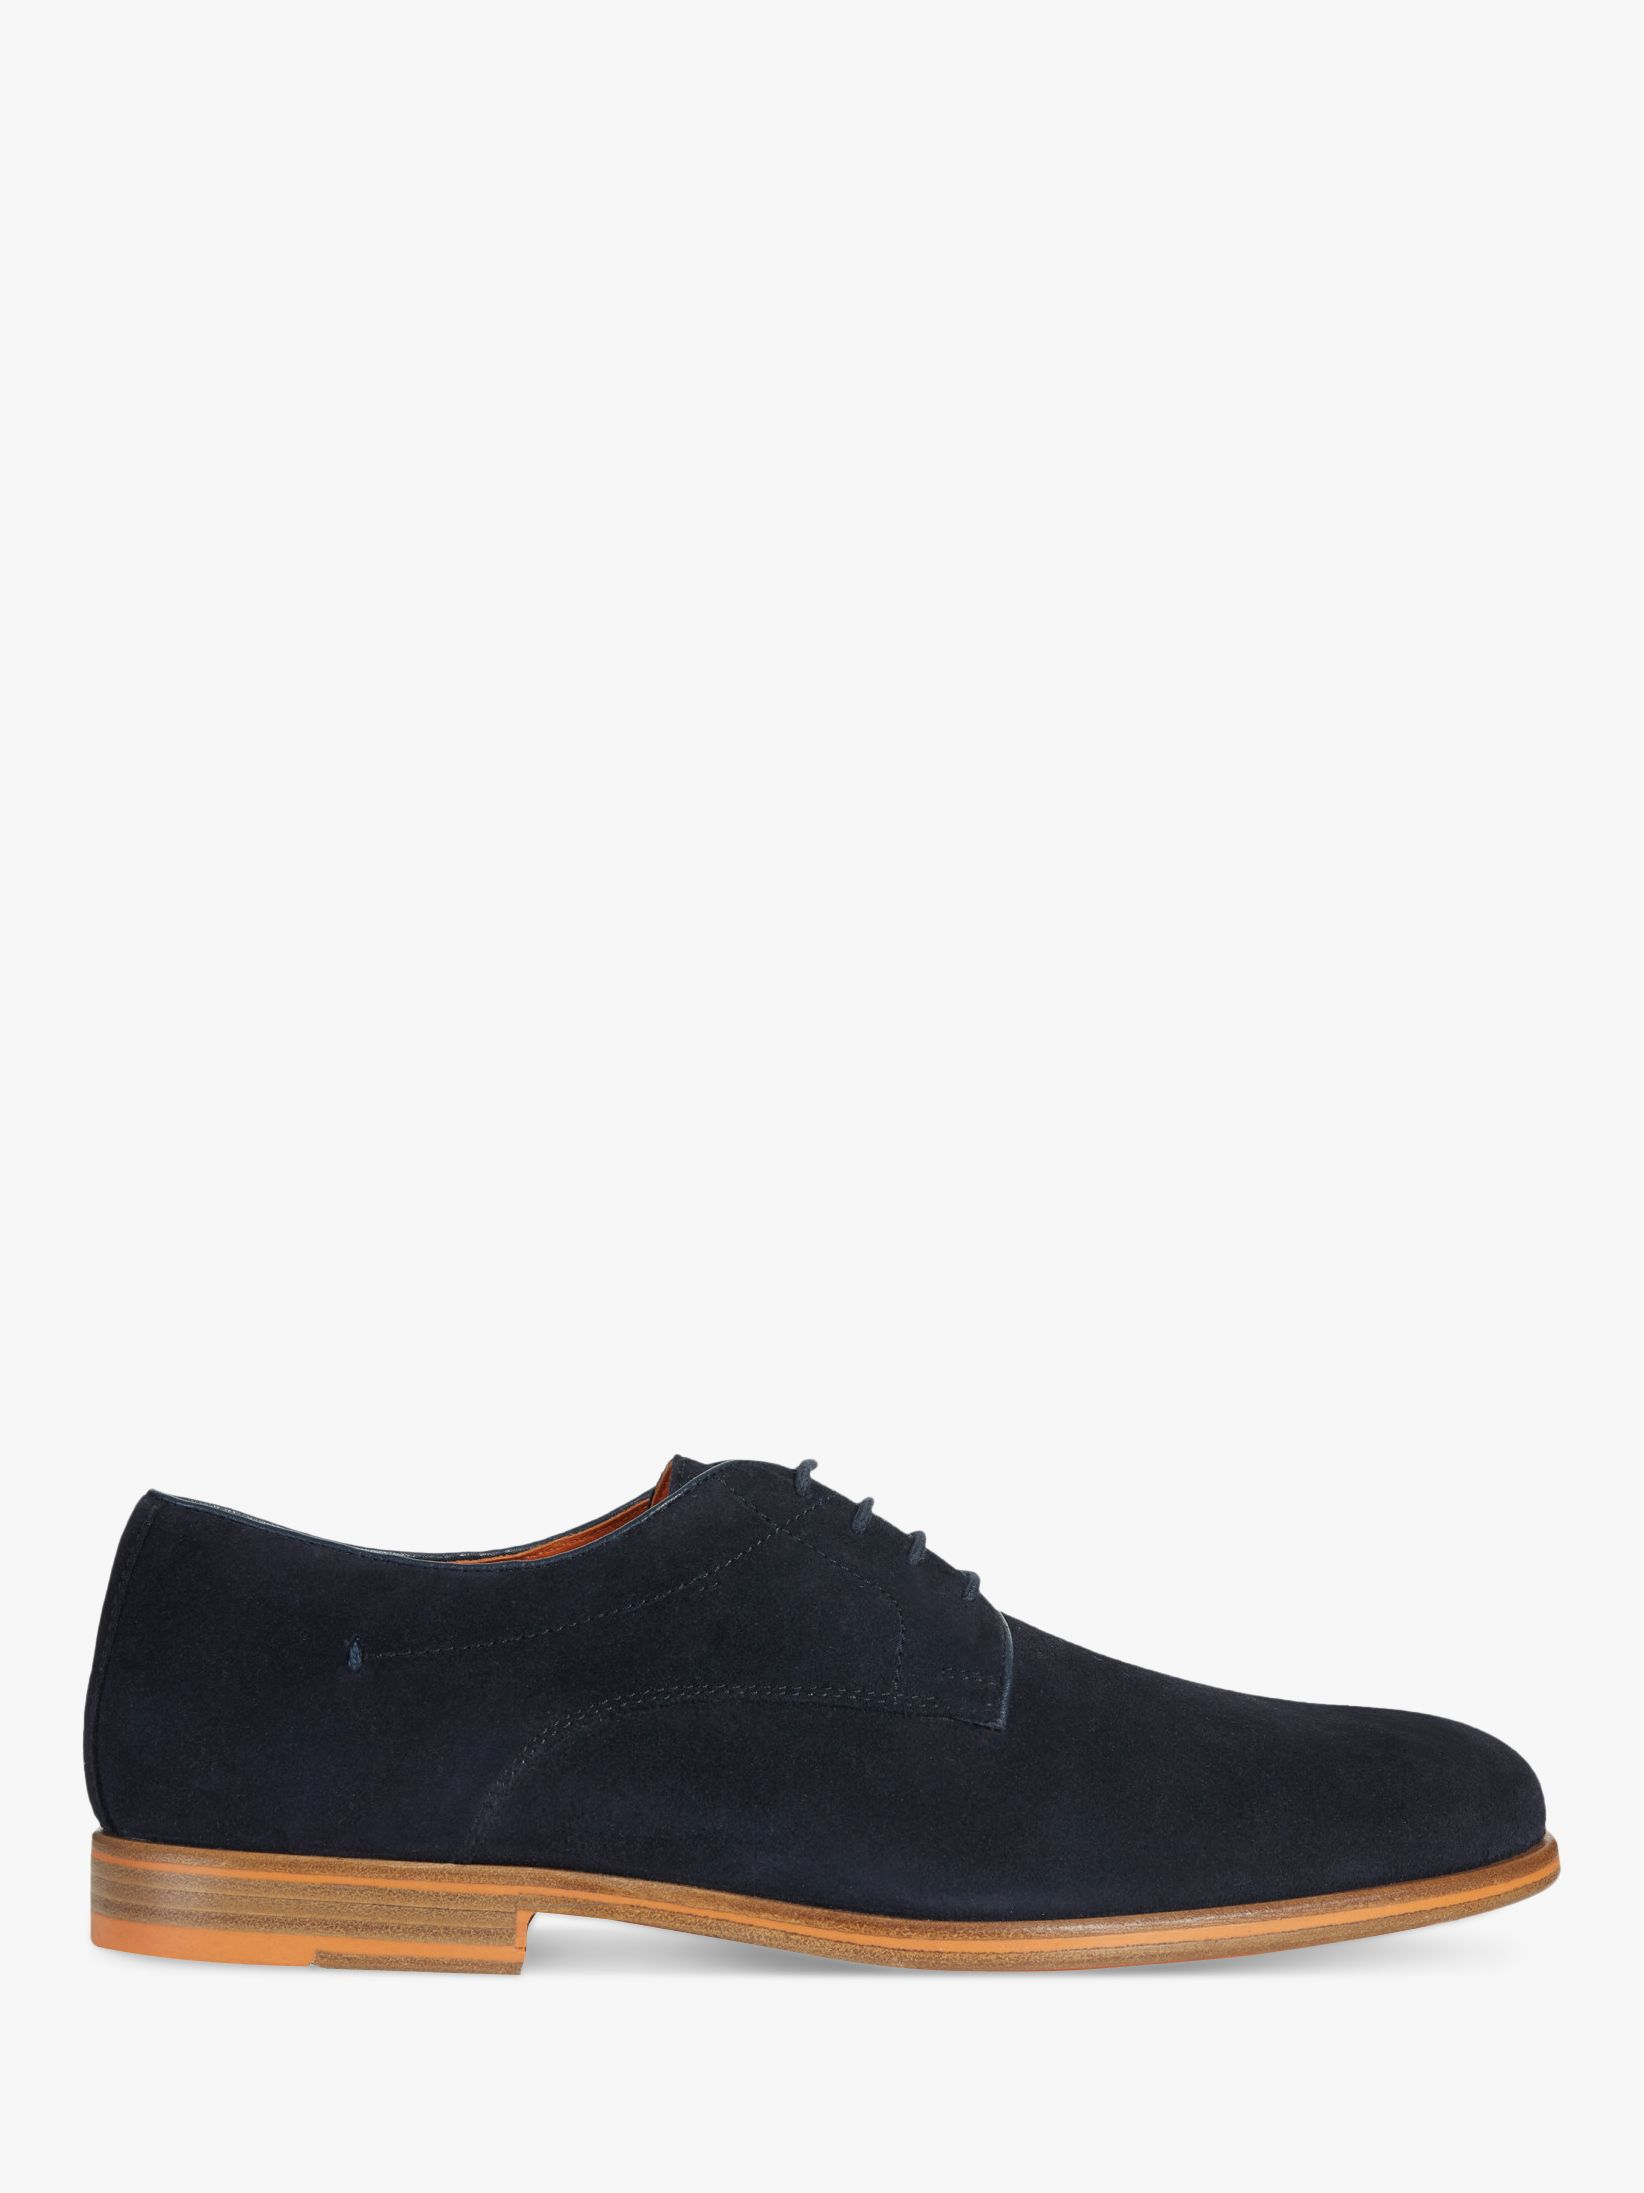 4afa14d506 Geox Bayle Suede Derby Shoes at John Lewis & Partners